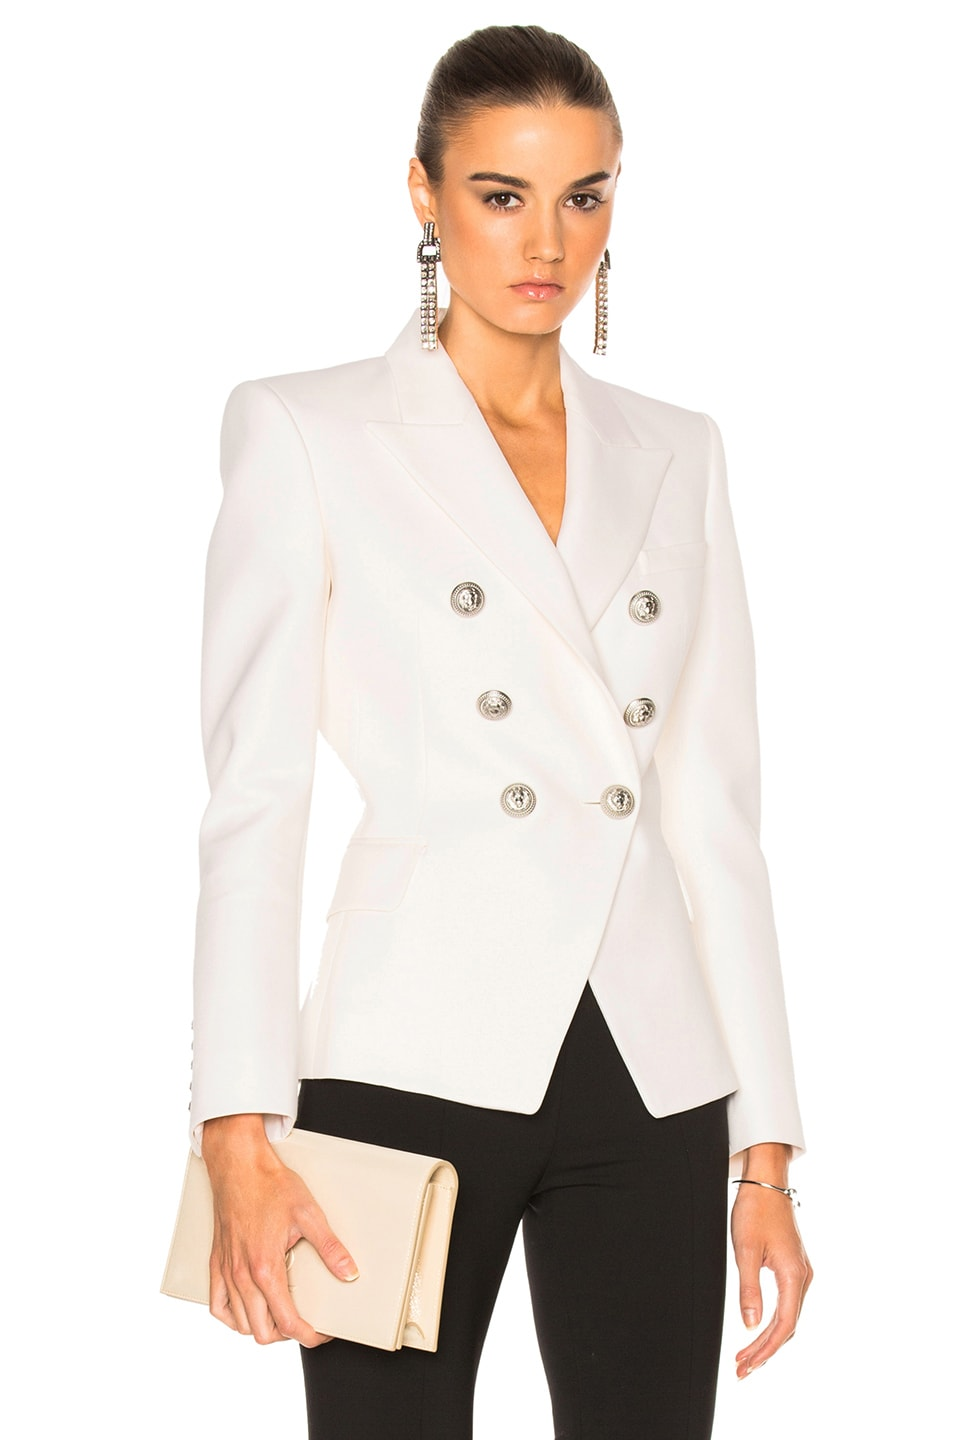 999a57d6 Image 1 of BALMAIN Double Breasted Blazer in White